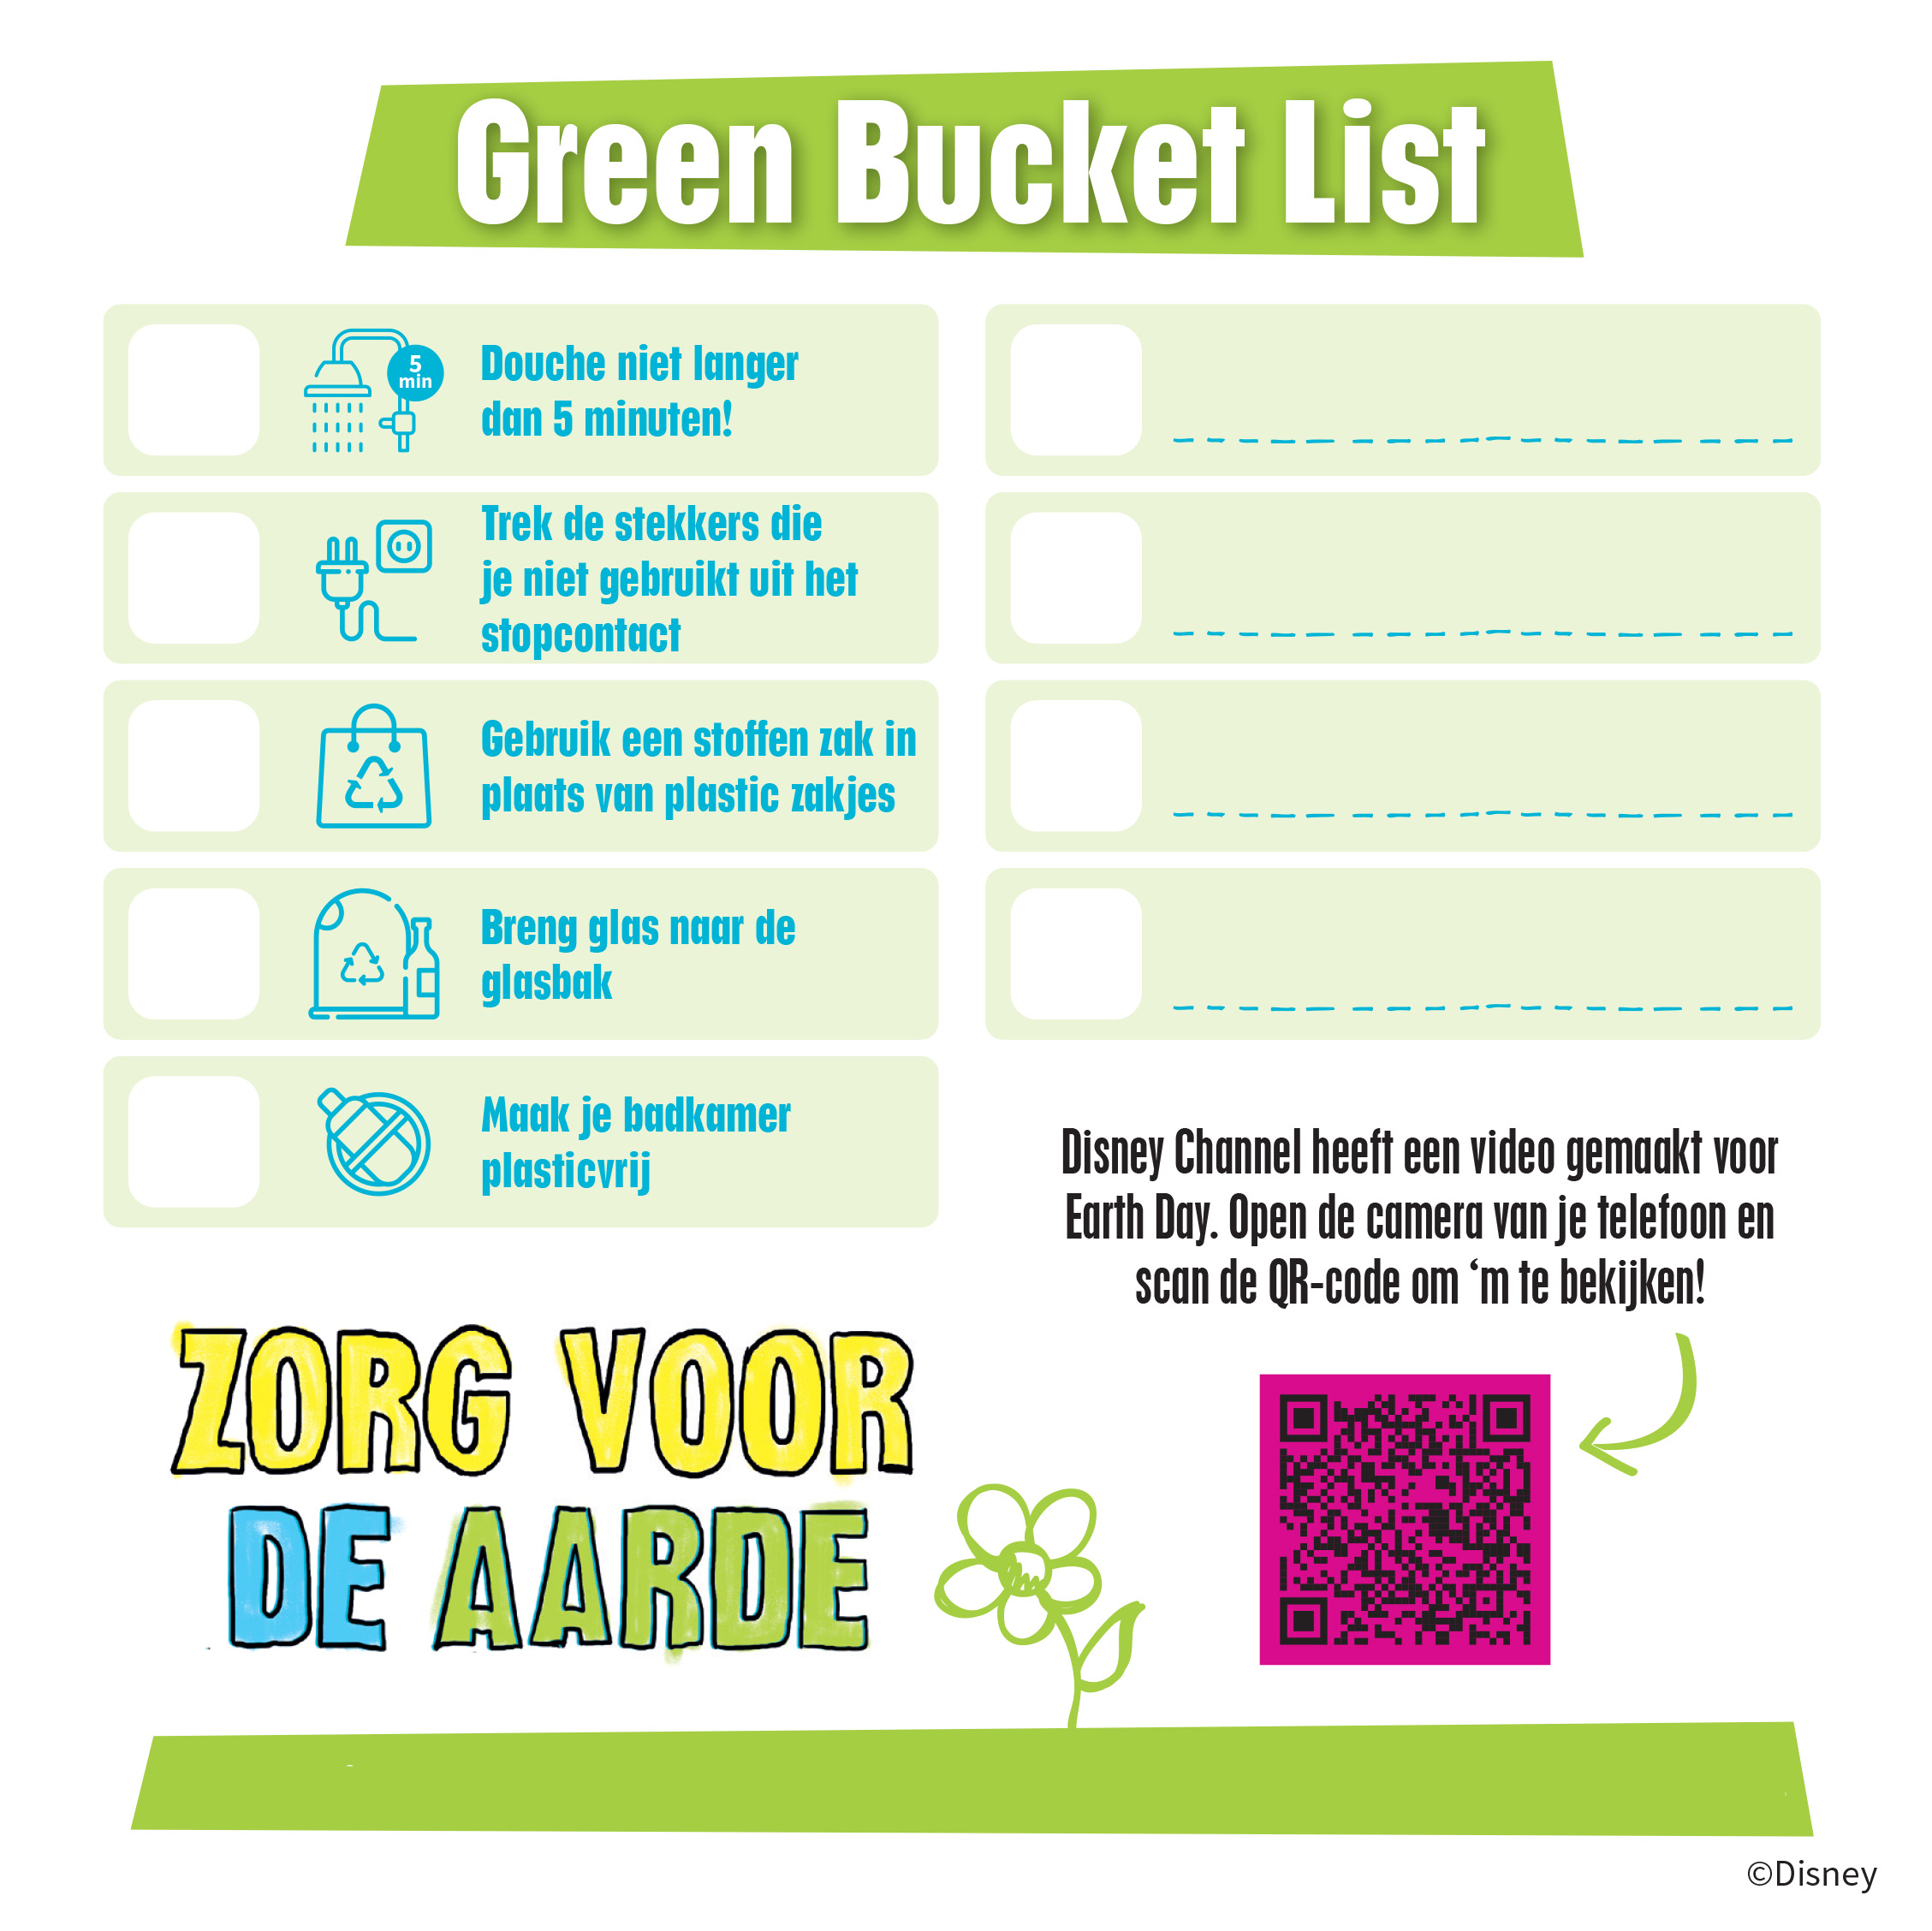 Disney Channel World Earth Day bucketlist